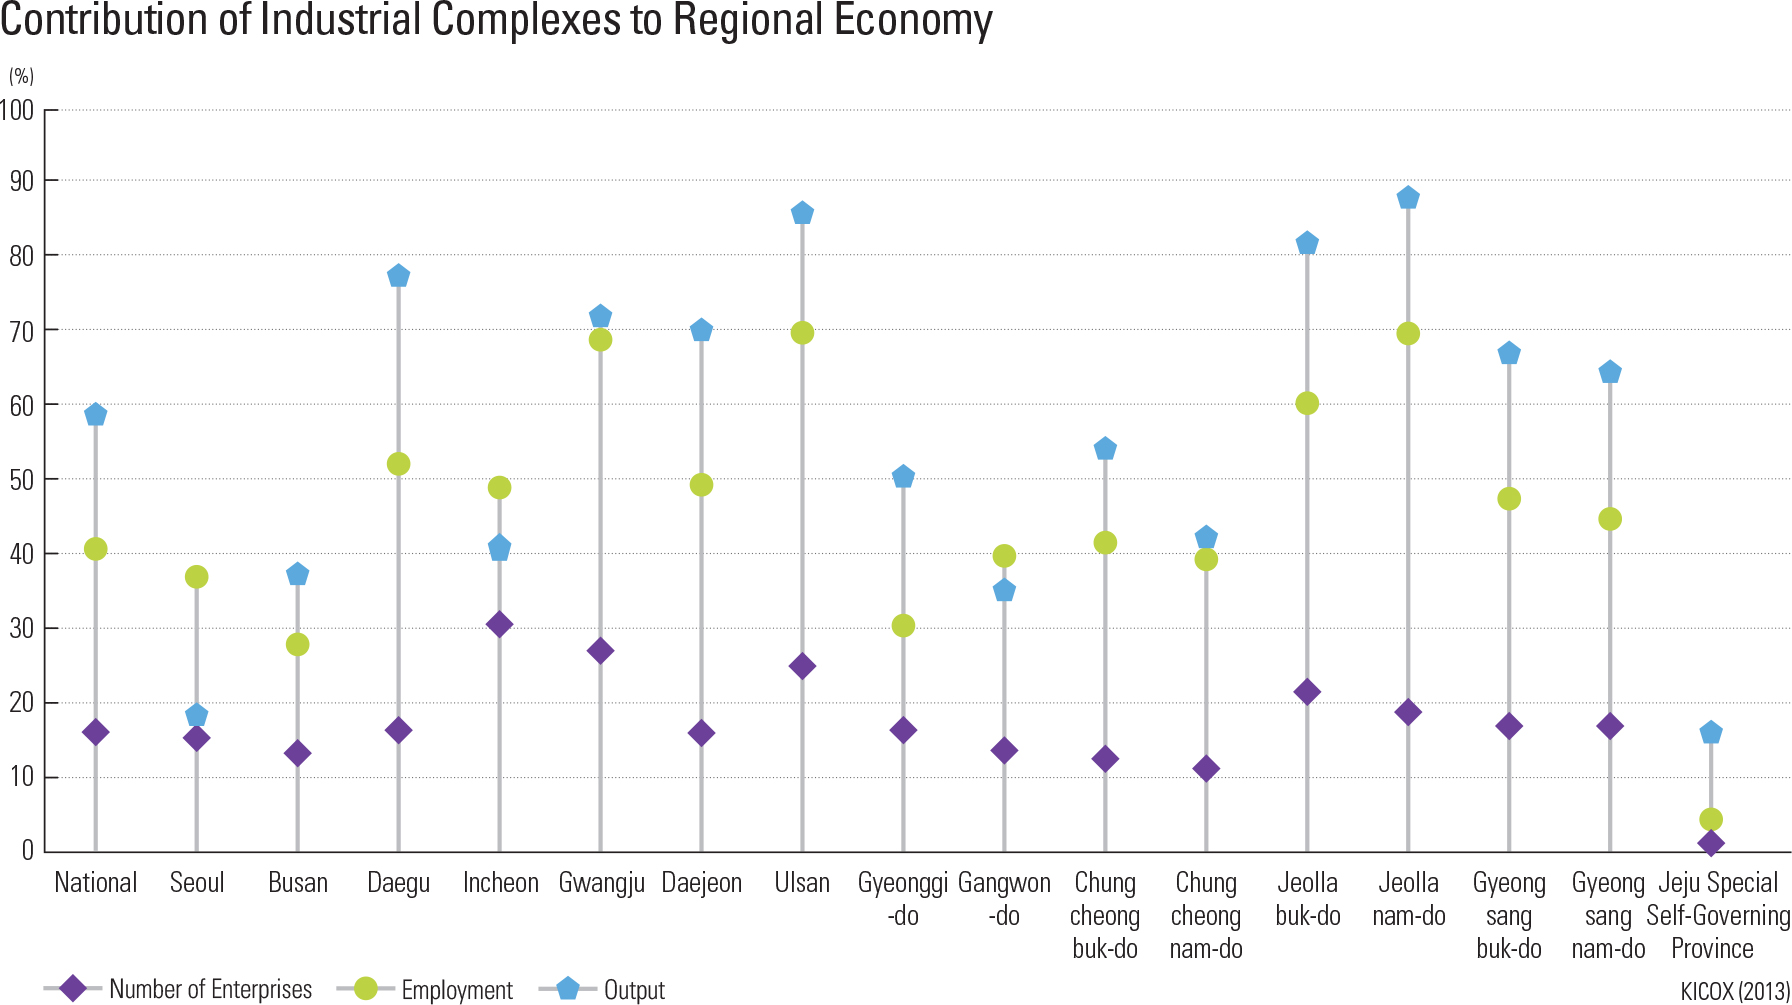 Contribution of Industrial Complexes to Regional Economy